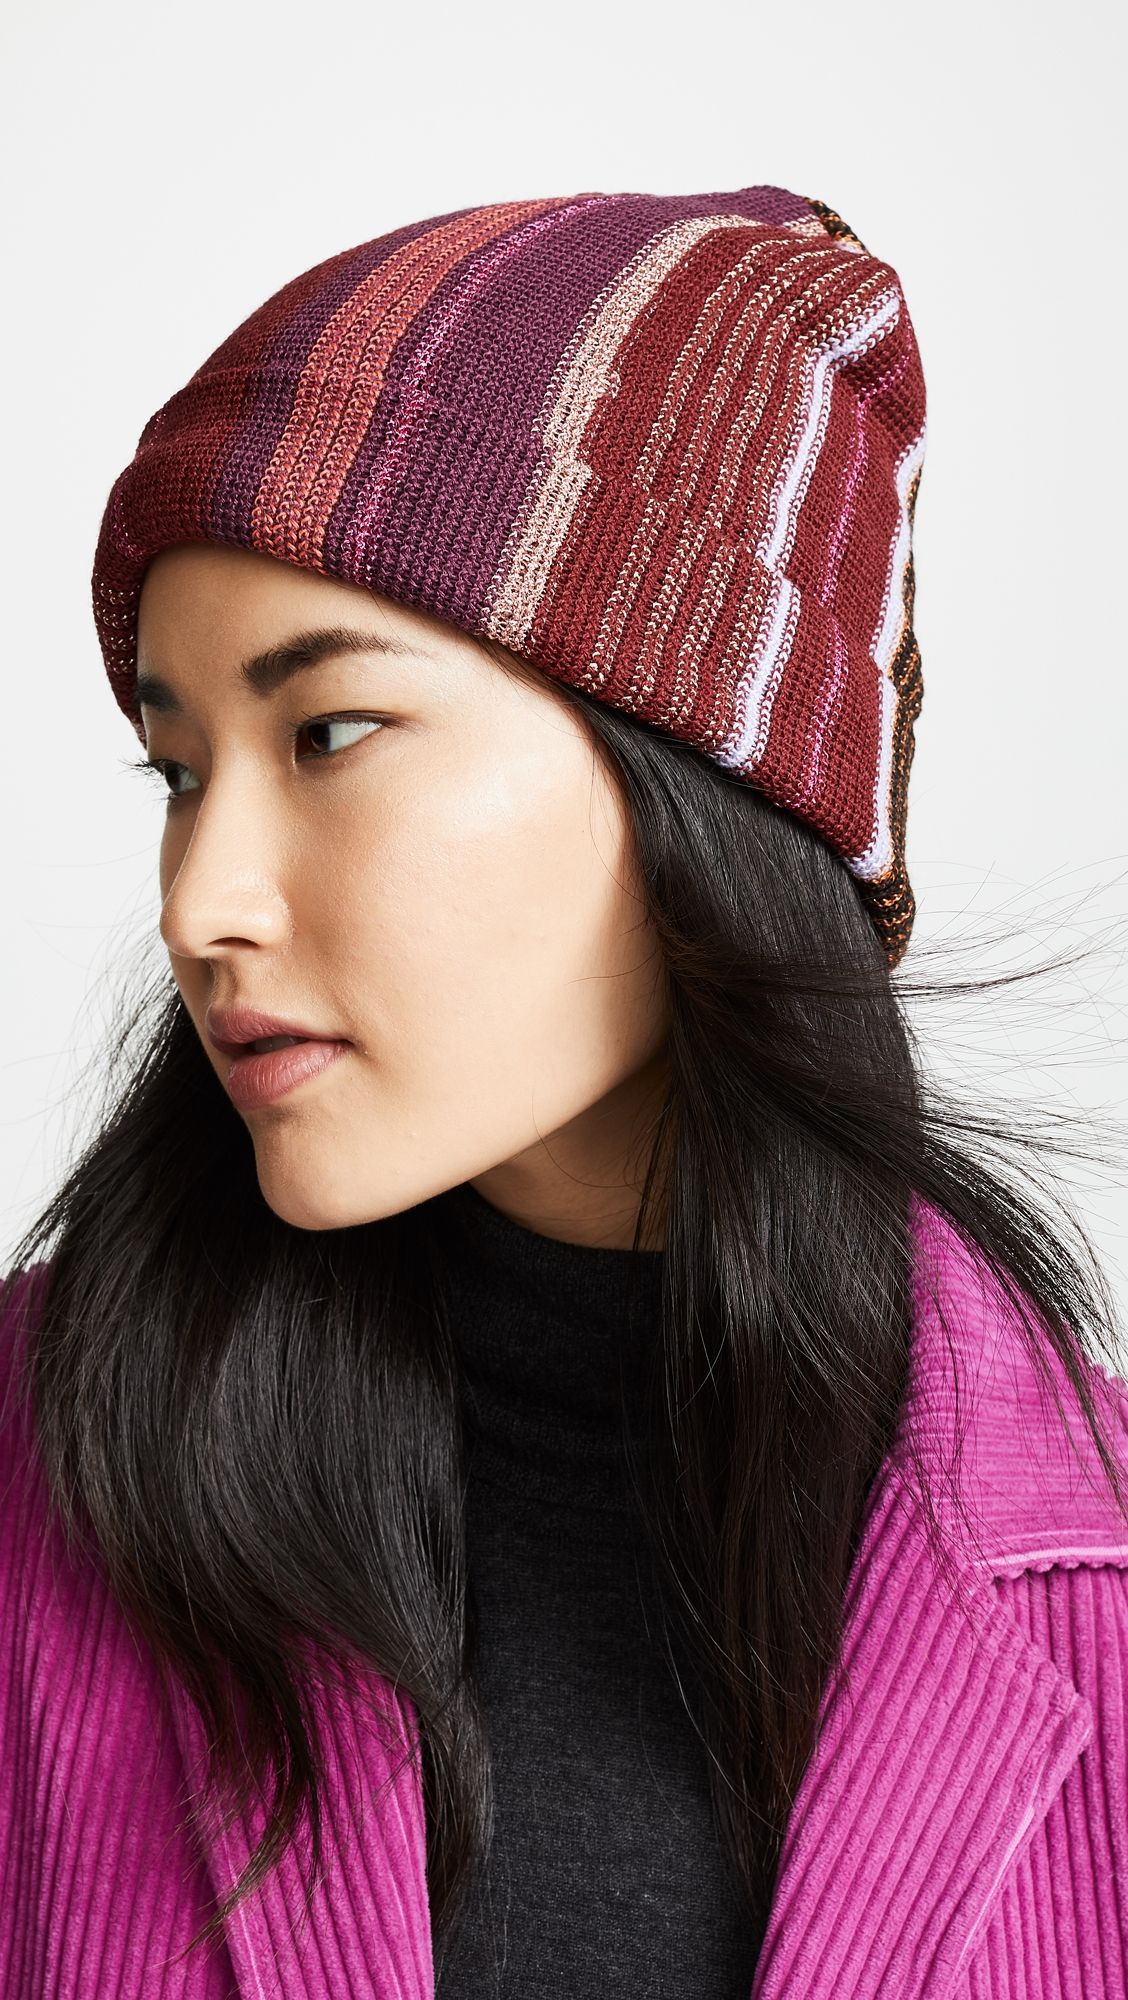 424e5638dff80f Narrow Striped Hat | Products | Hats, Knitted hats, Missoni